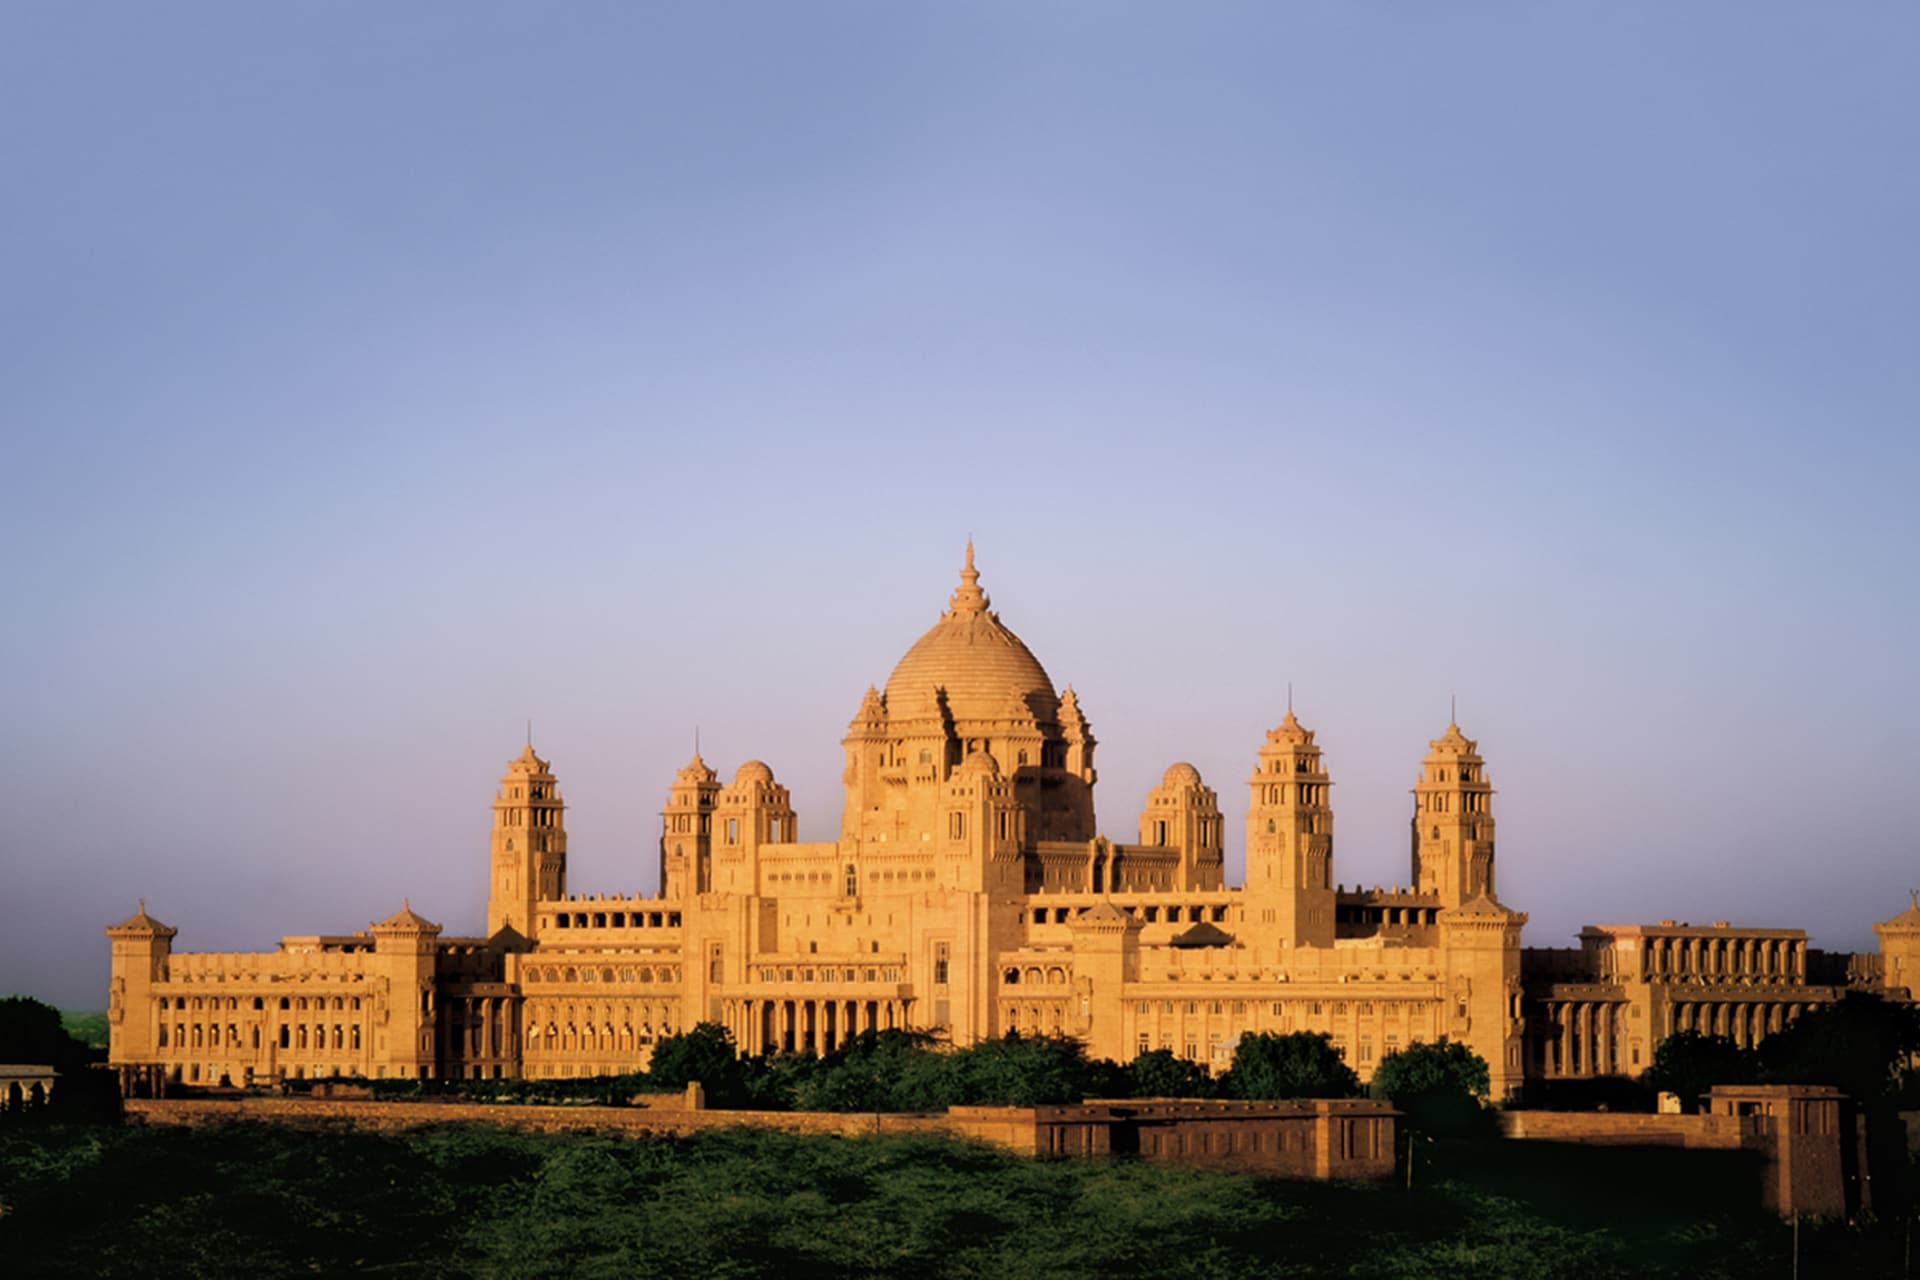 The Umaid Bhawan Palace. Image credit: Getty Images